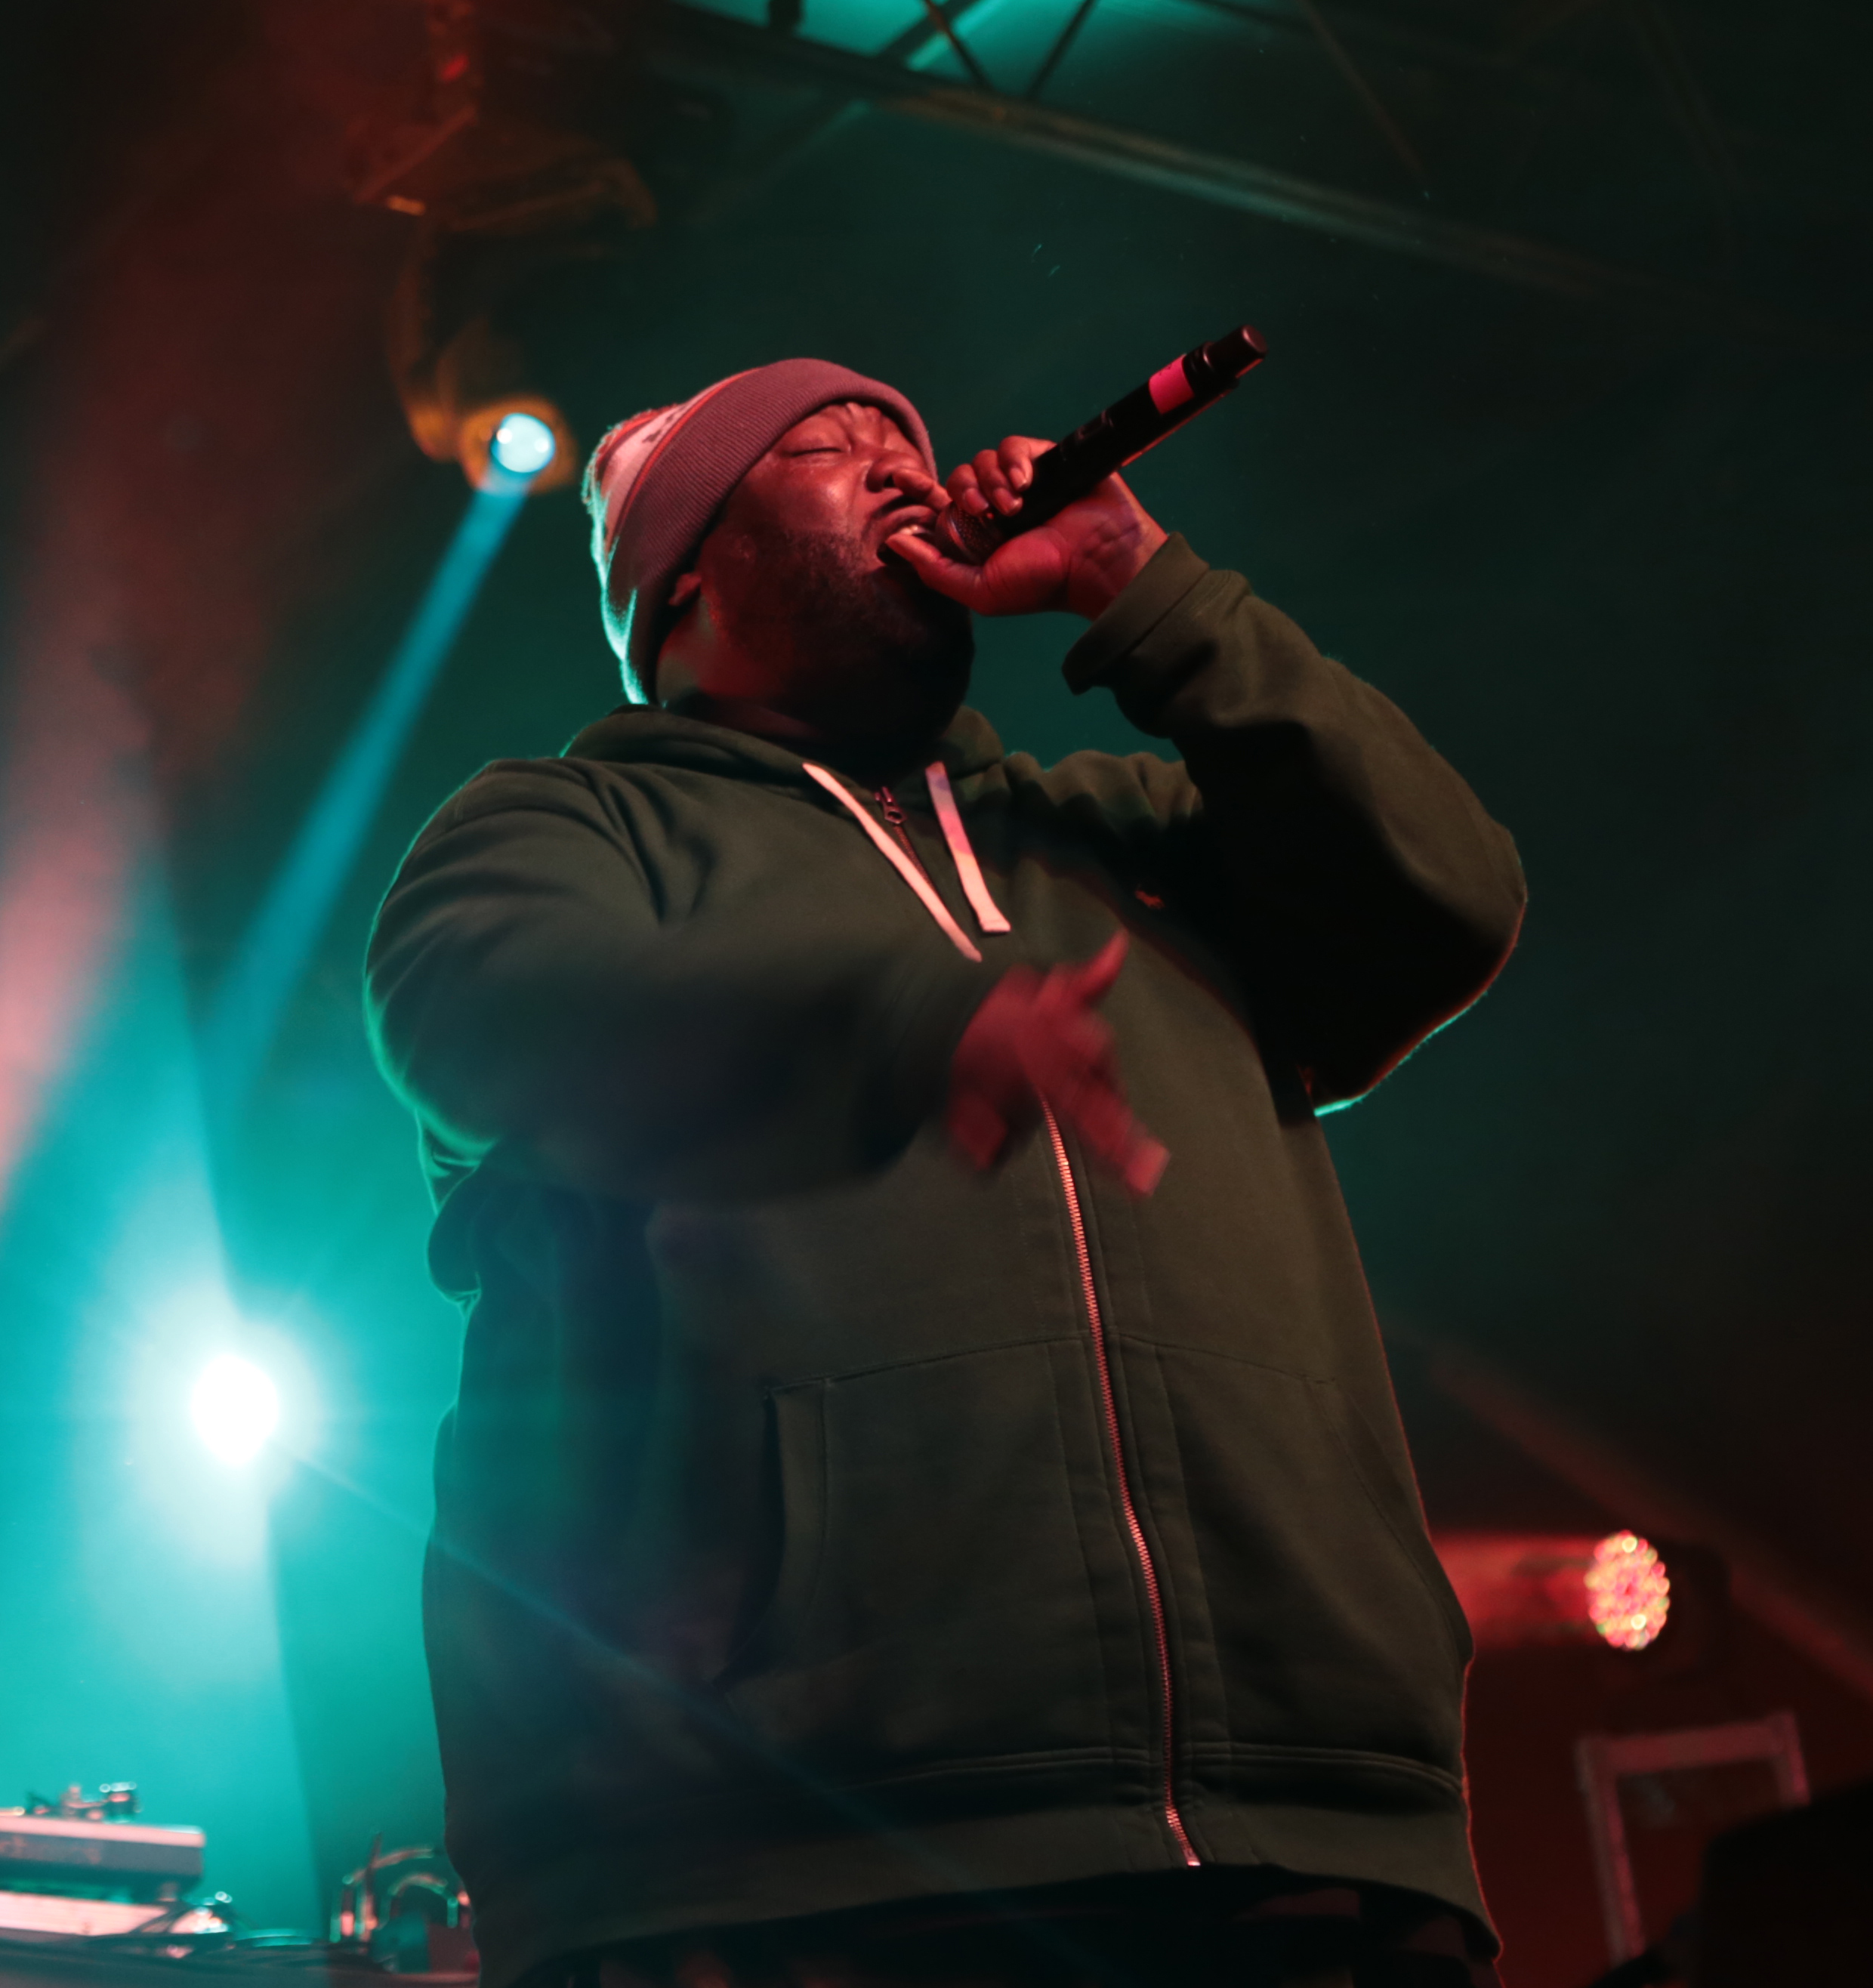 Killer Mike discography - Wikipedia